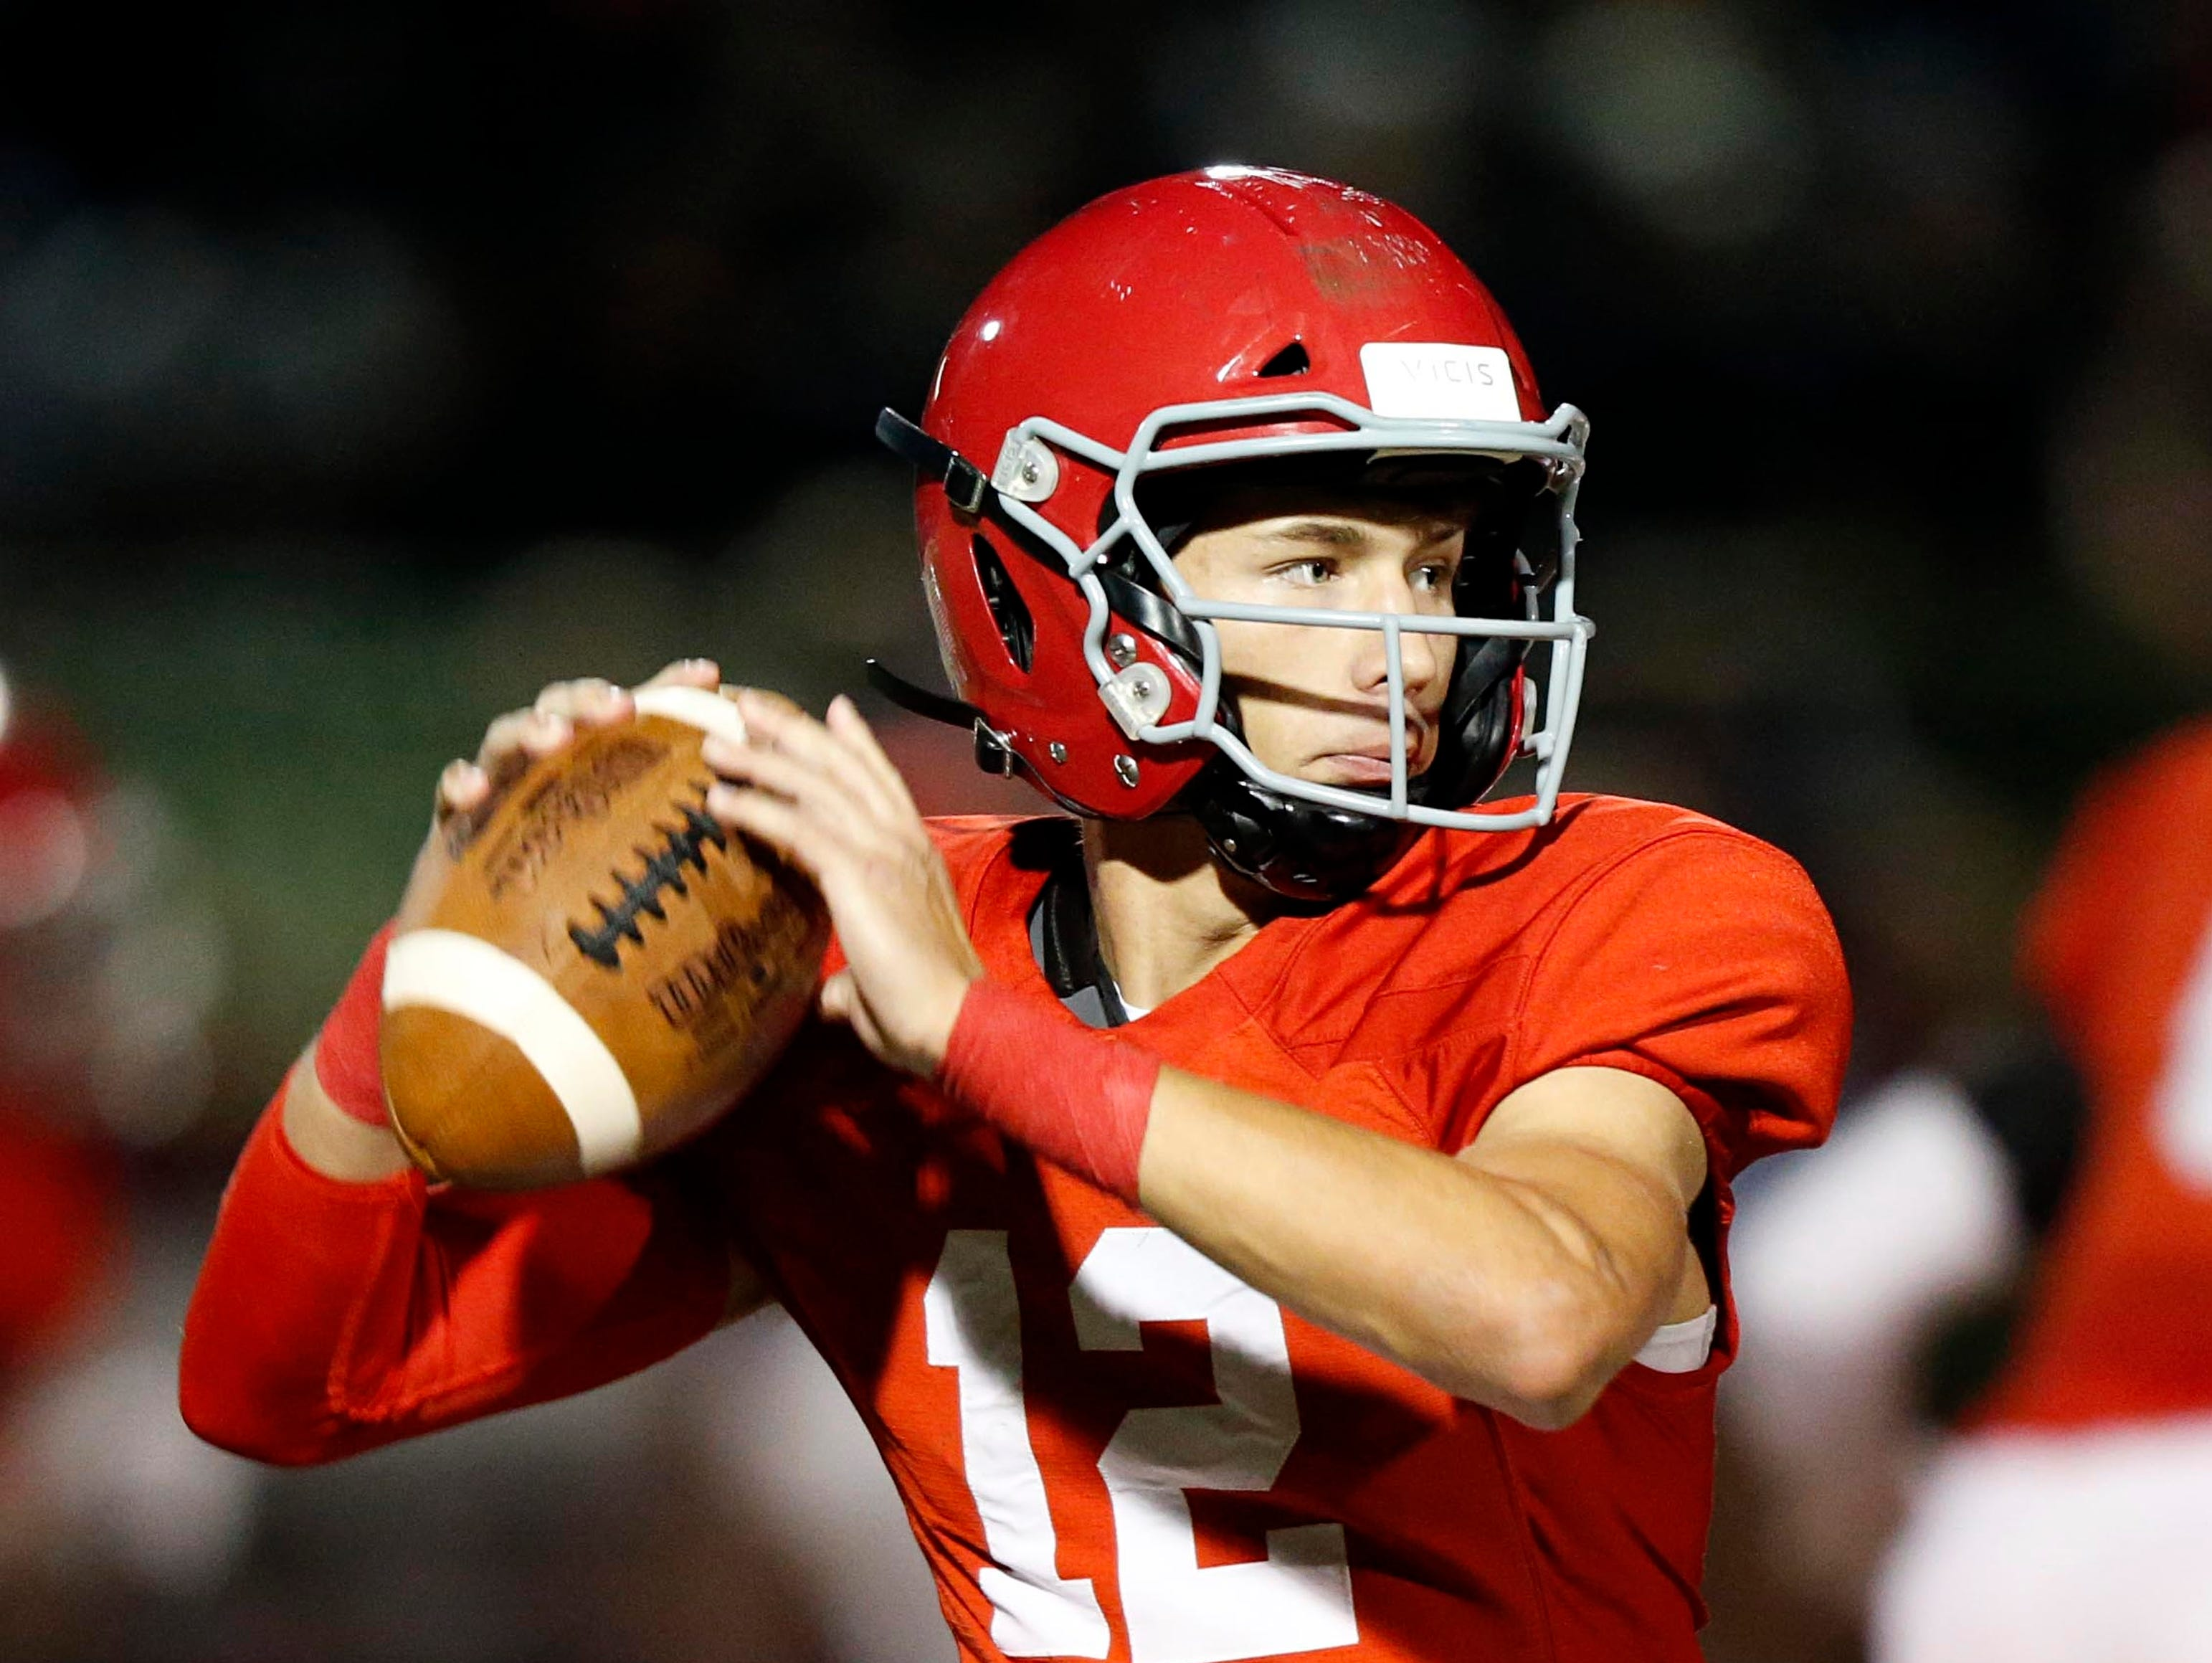 12. Brentwood Academy (9-2) beat Christian Brothers, 21-14.